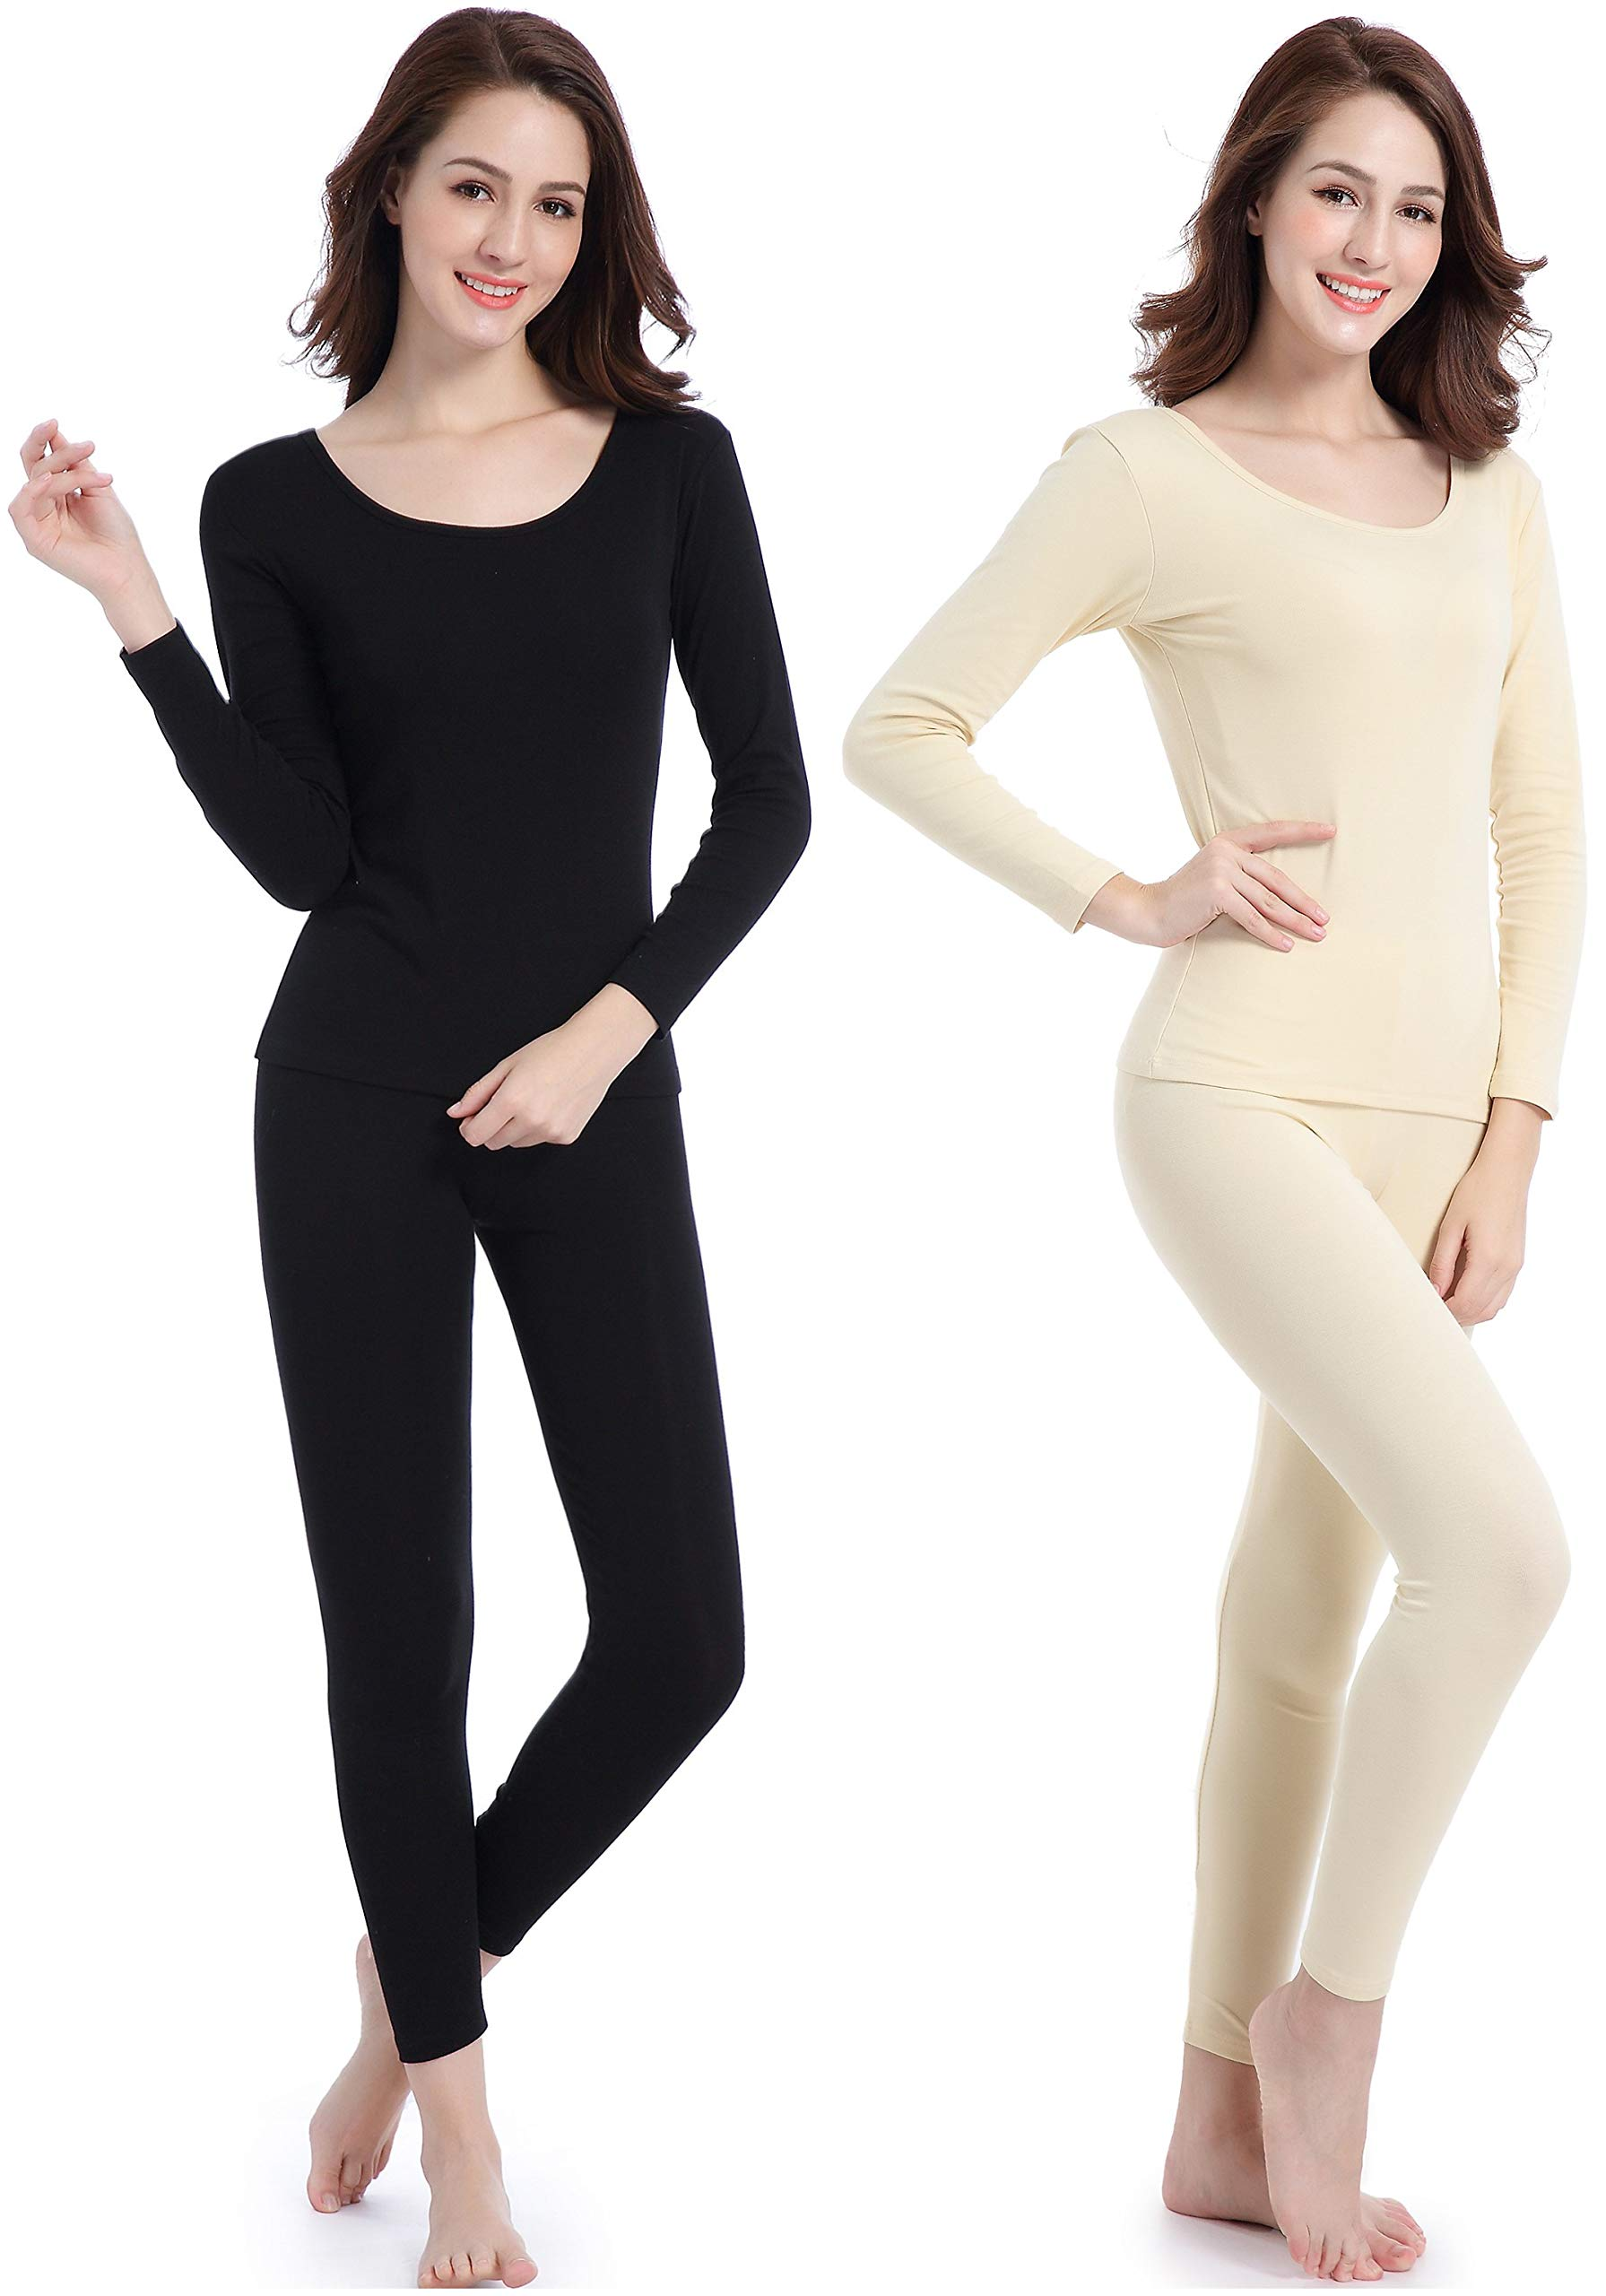 Thermal Underwear Womens Clothing Base-Layer Crew Neck Smooth Long Johns Set by Ferrieswheel Story